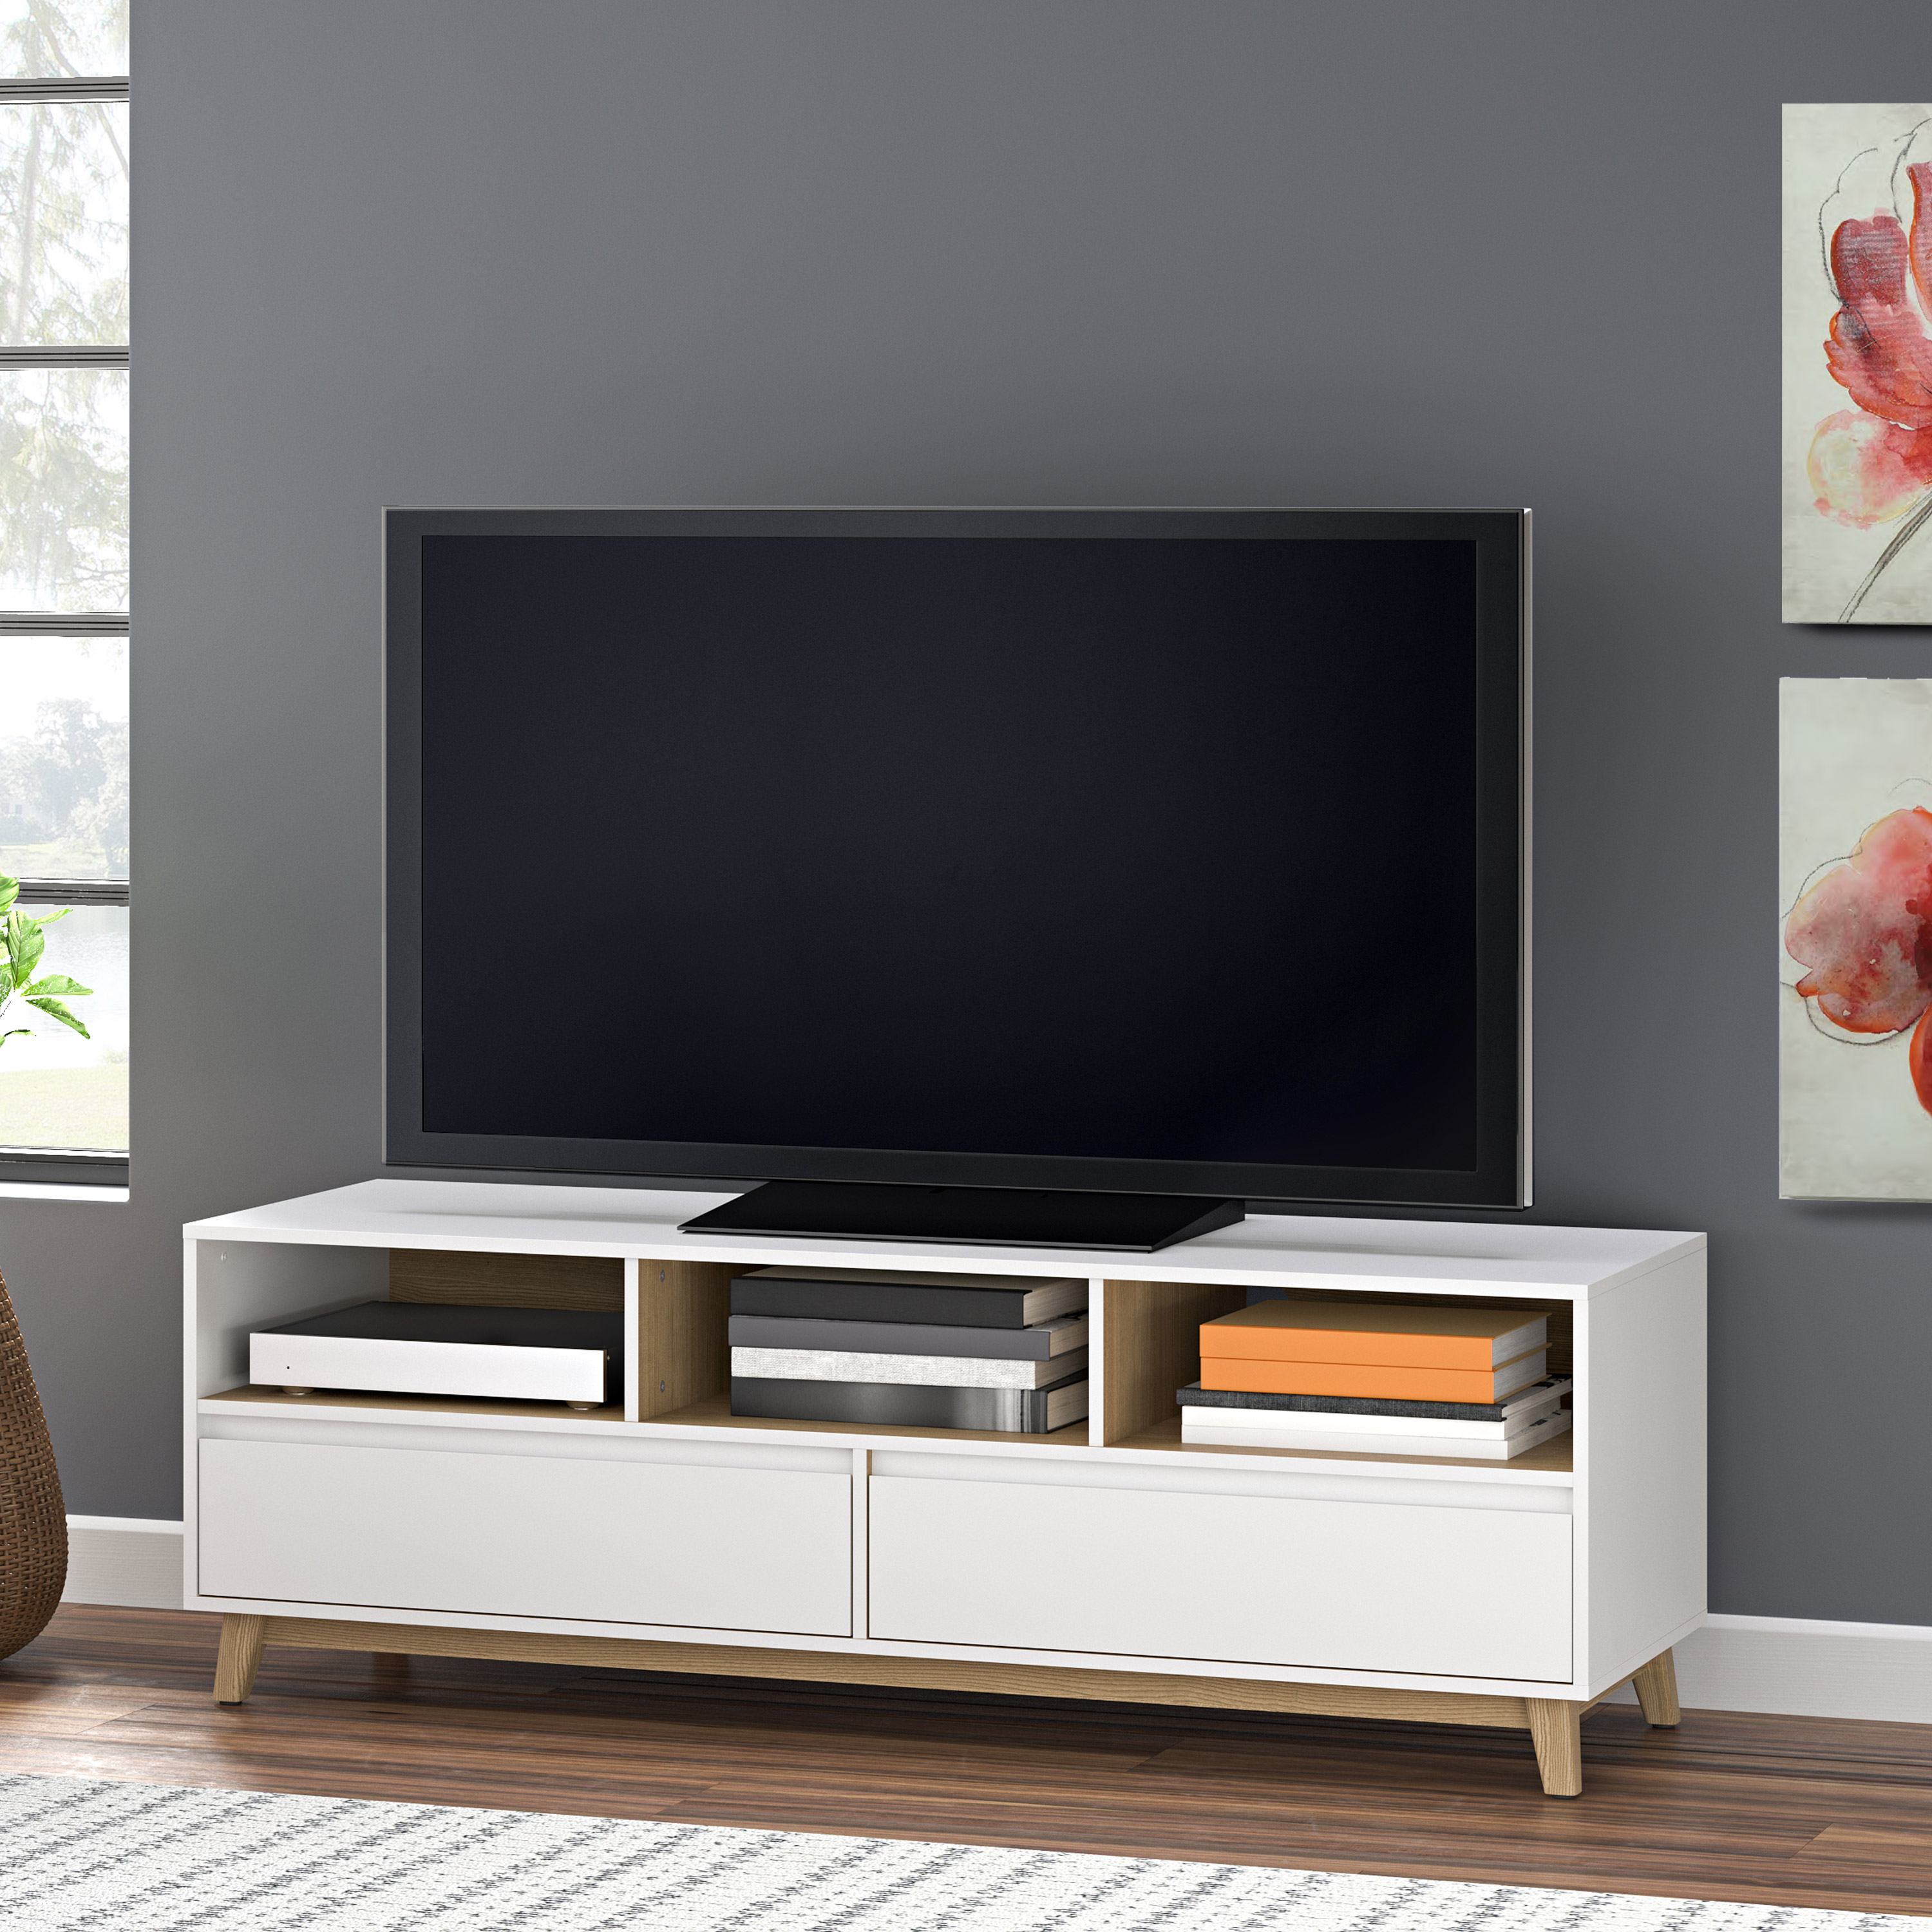 Mainstays Mid Century Tv Stand For 70 Flat Panel Tvs White Finish